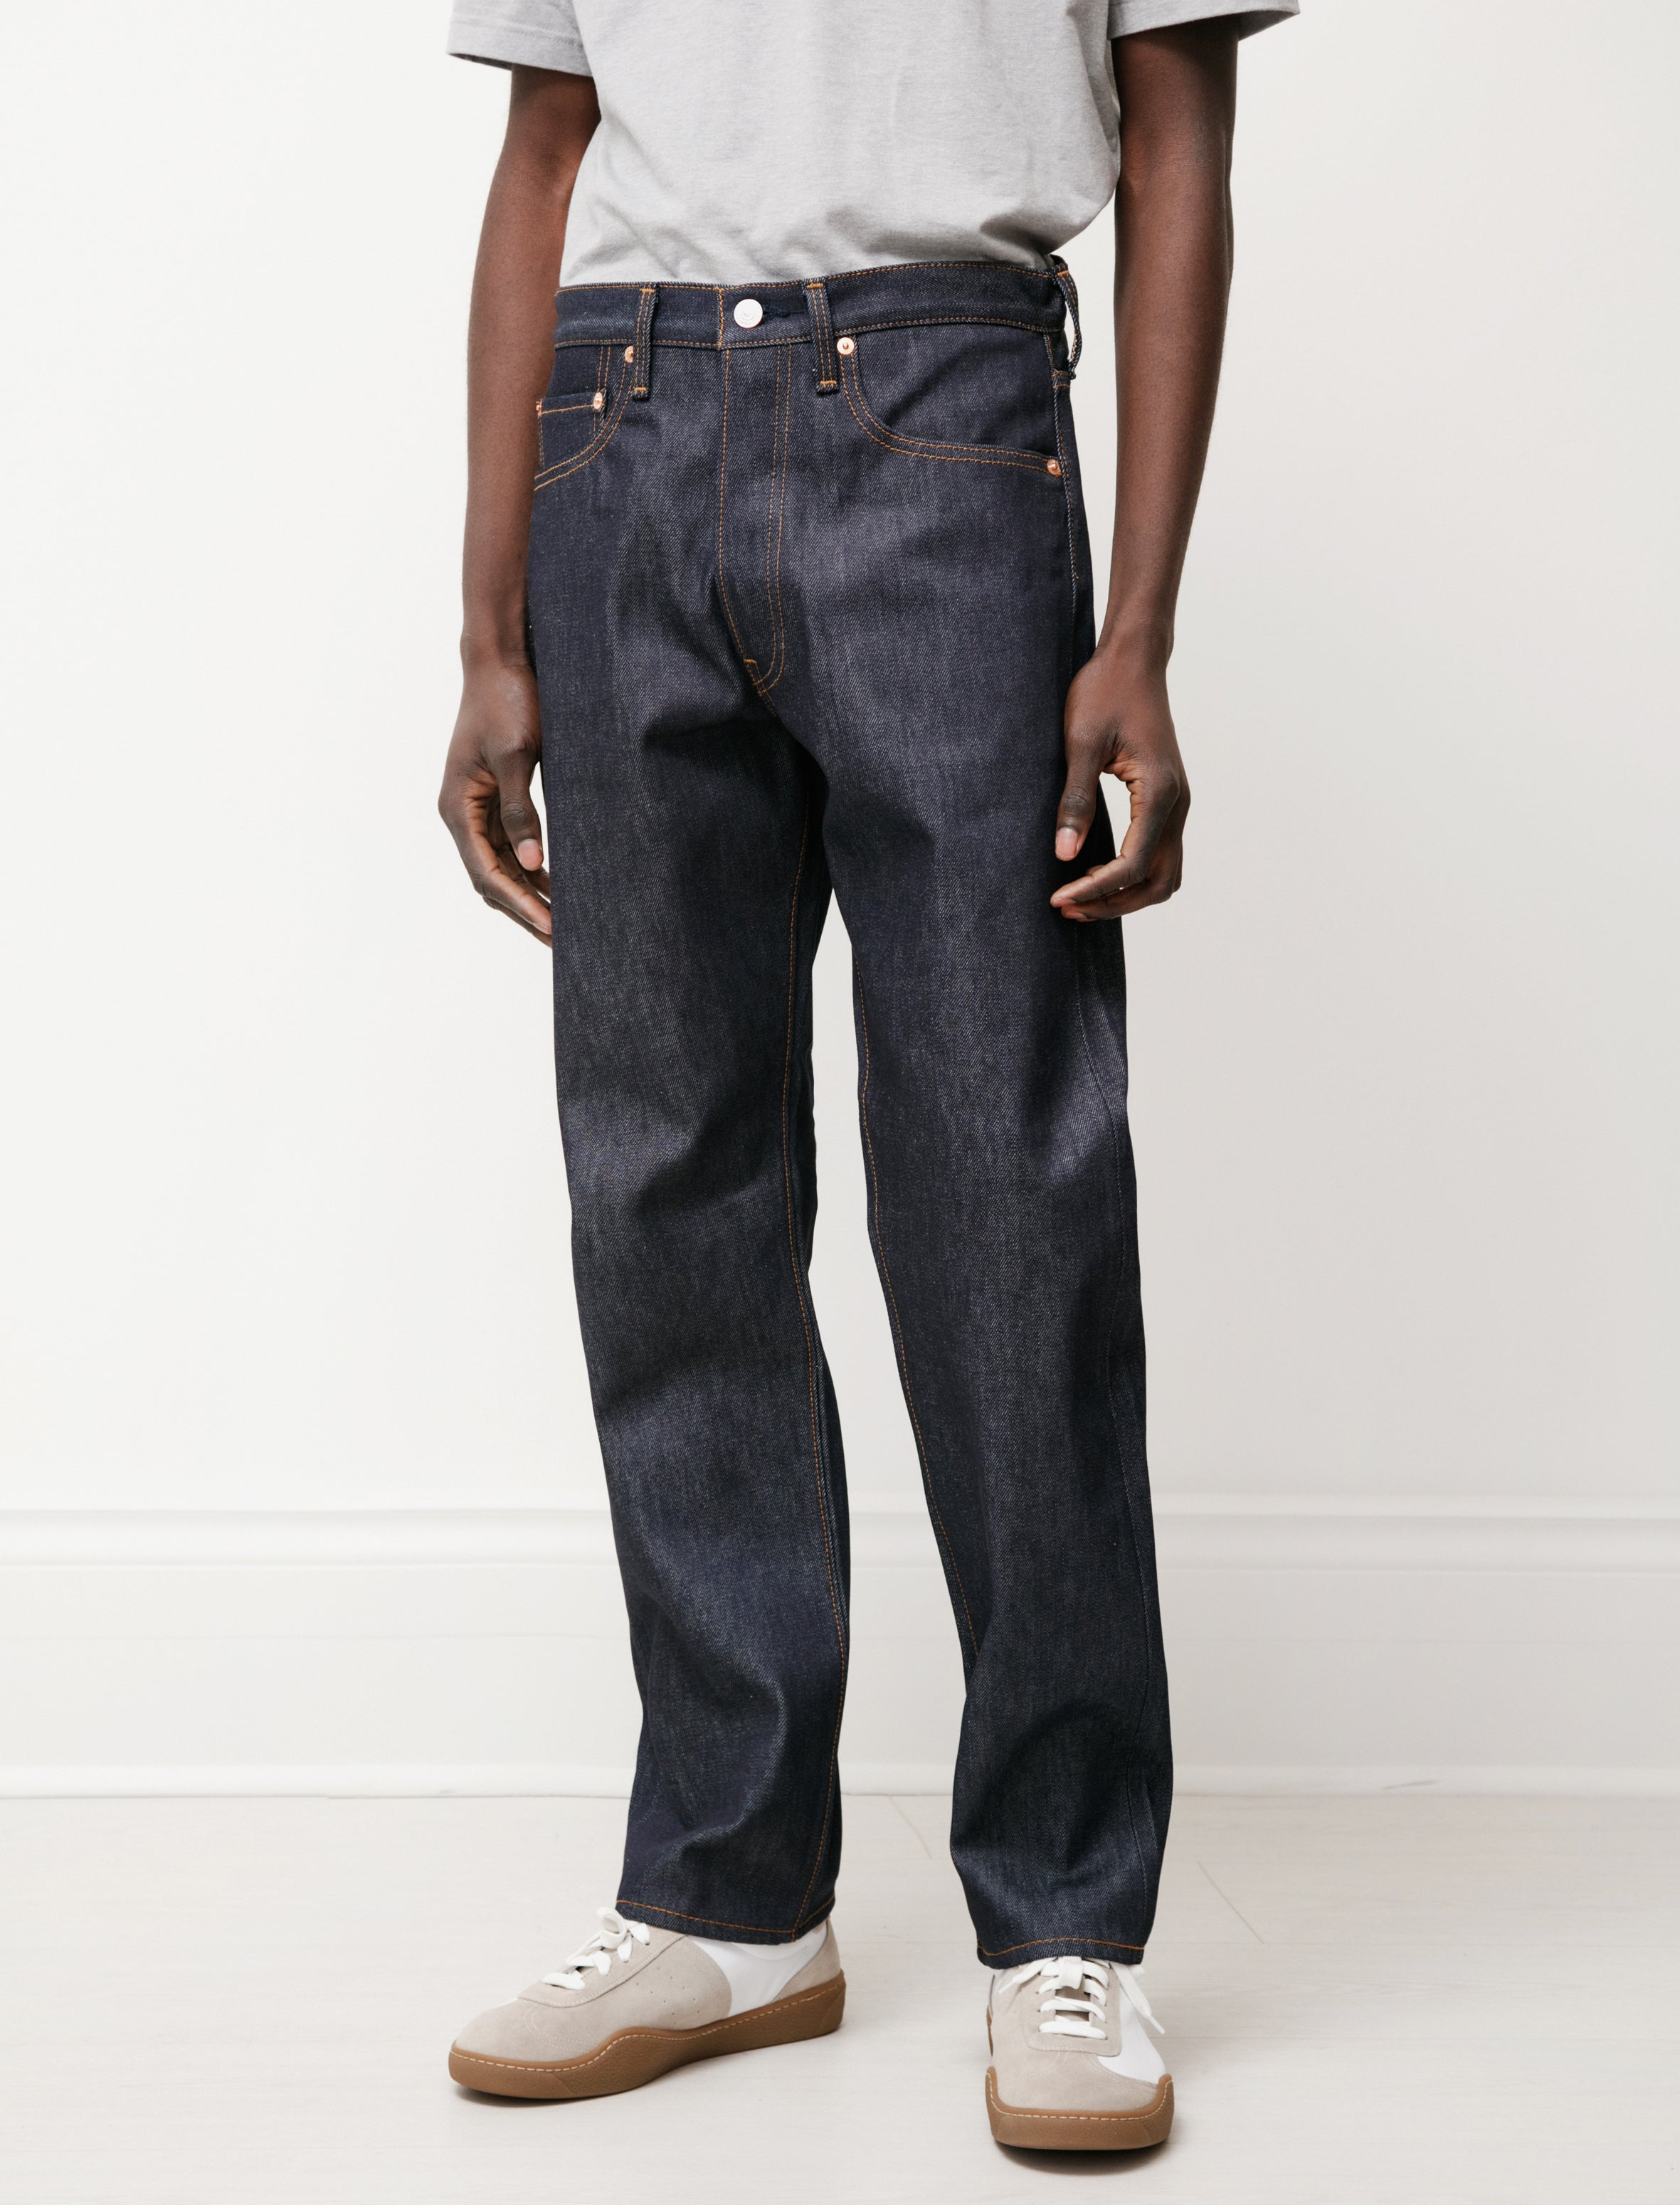 orSlow 105 90's Denim Rigid